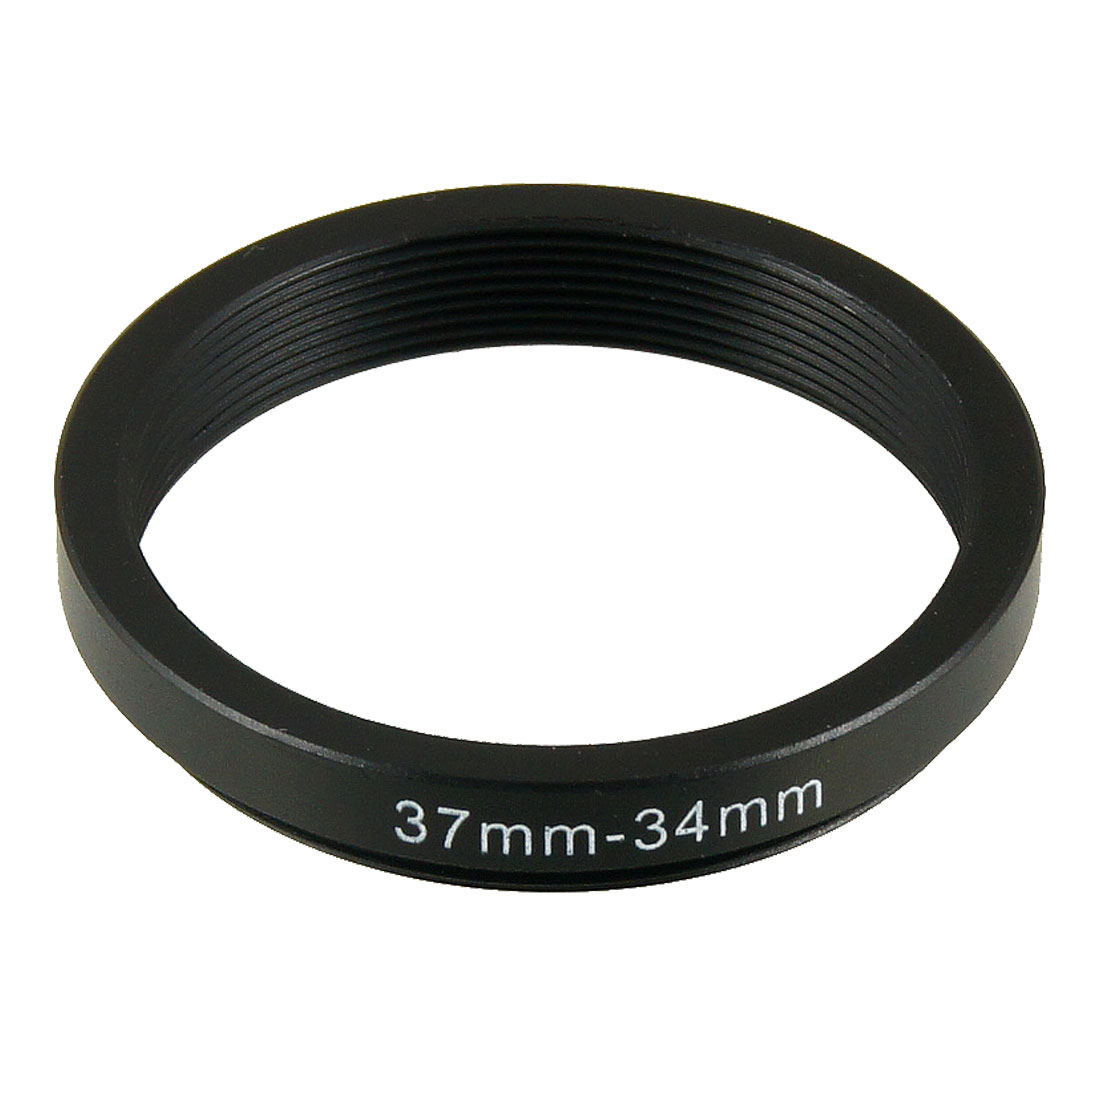 37mm-34mm 37mm to 34mm Black Step Down Ring Adapter for Camera